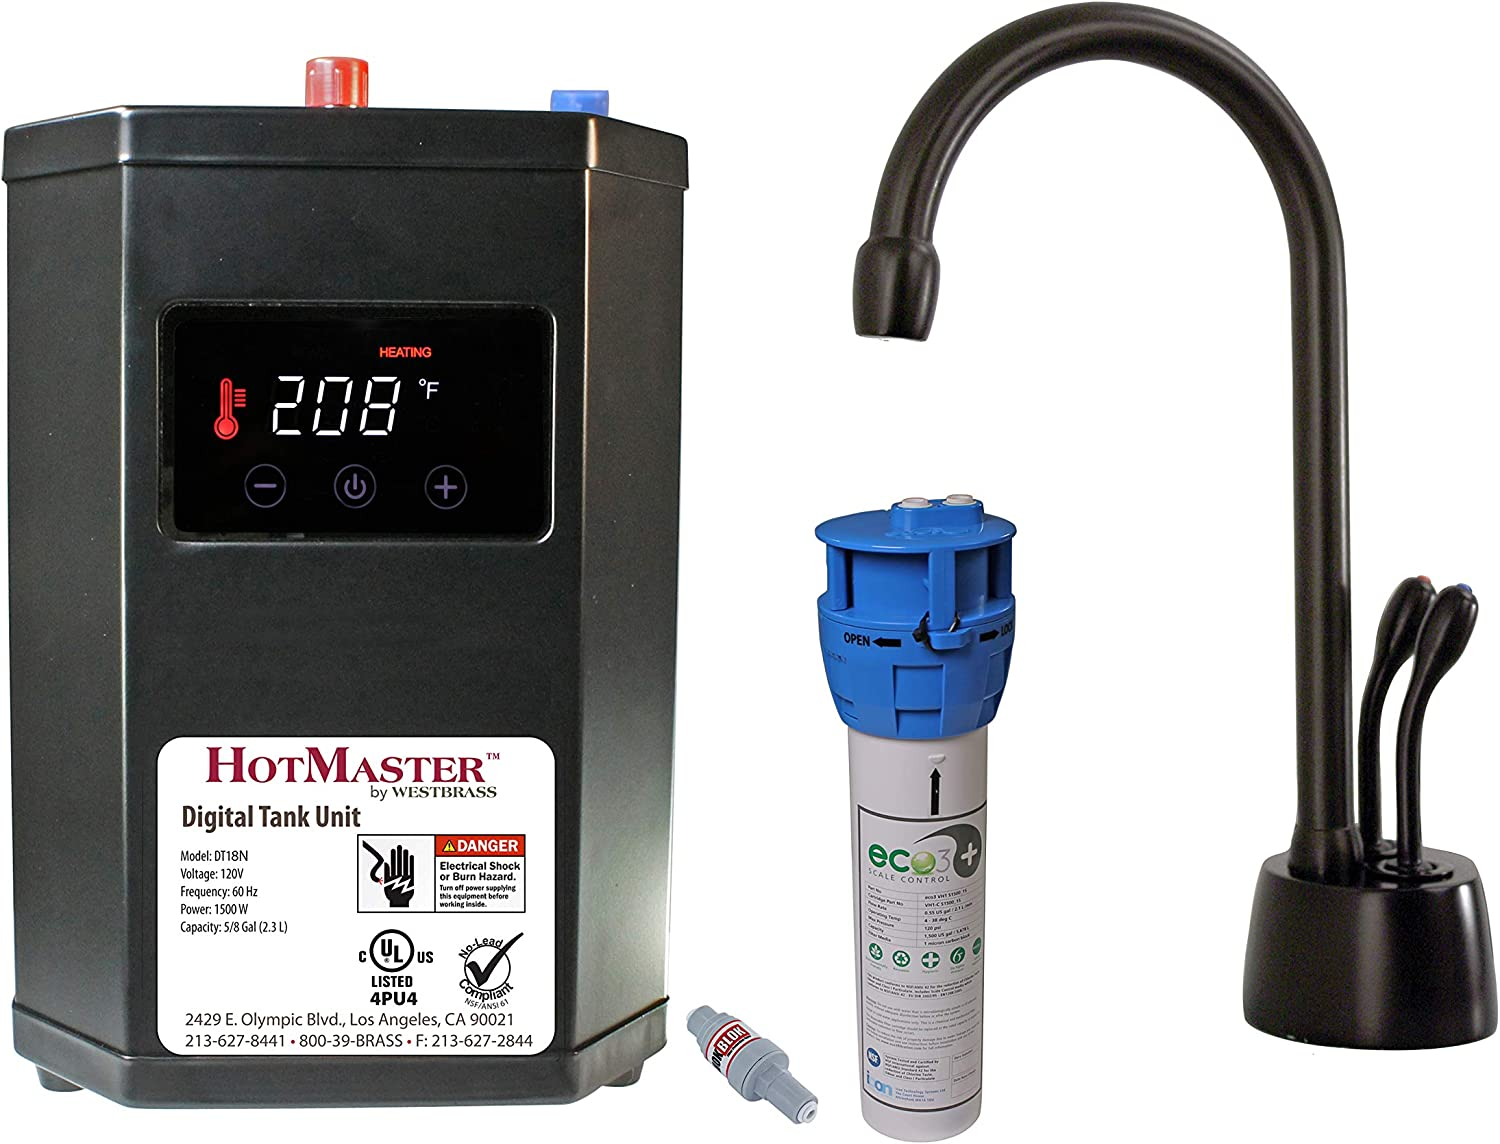 Westbrass DT1F272-12 Develosah 9 in. Instant Hot and Cold Water Dispenser Faucet with HotMaster DigiHot Digital Tank System, Oil Rubbed Bronze